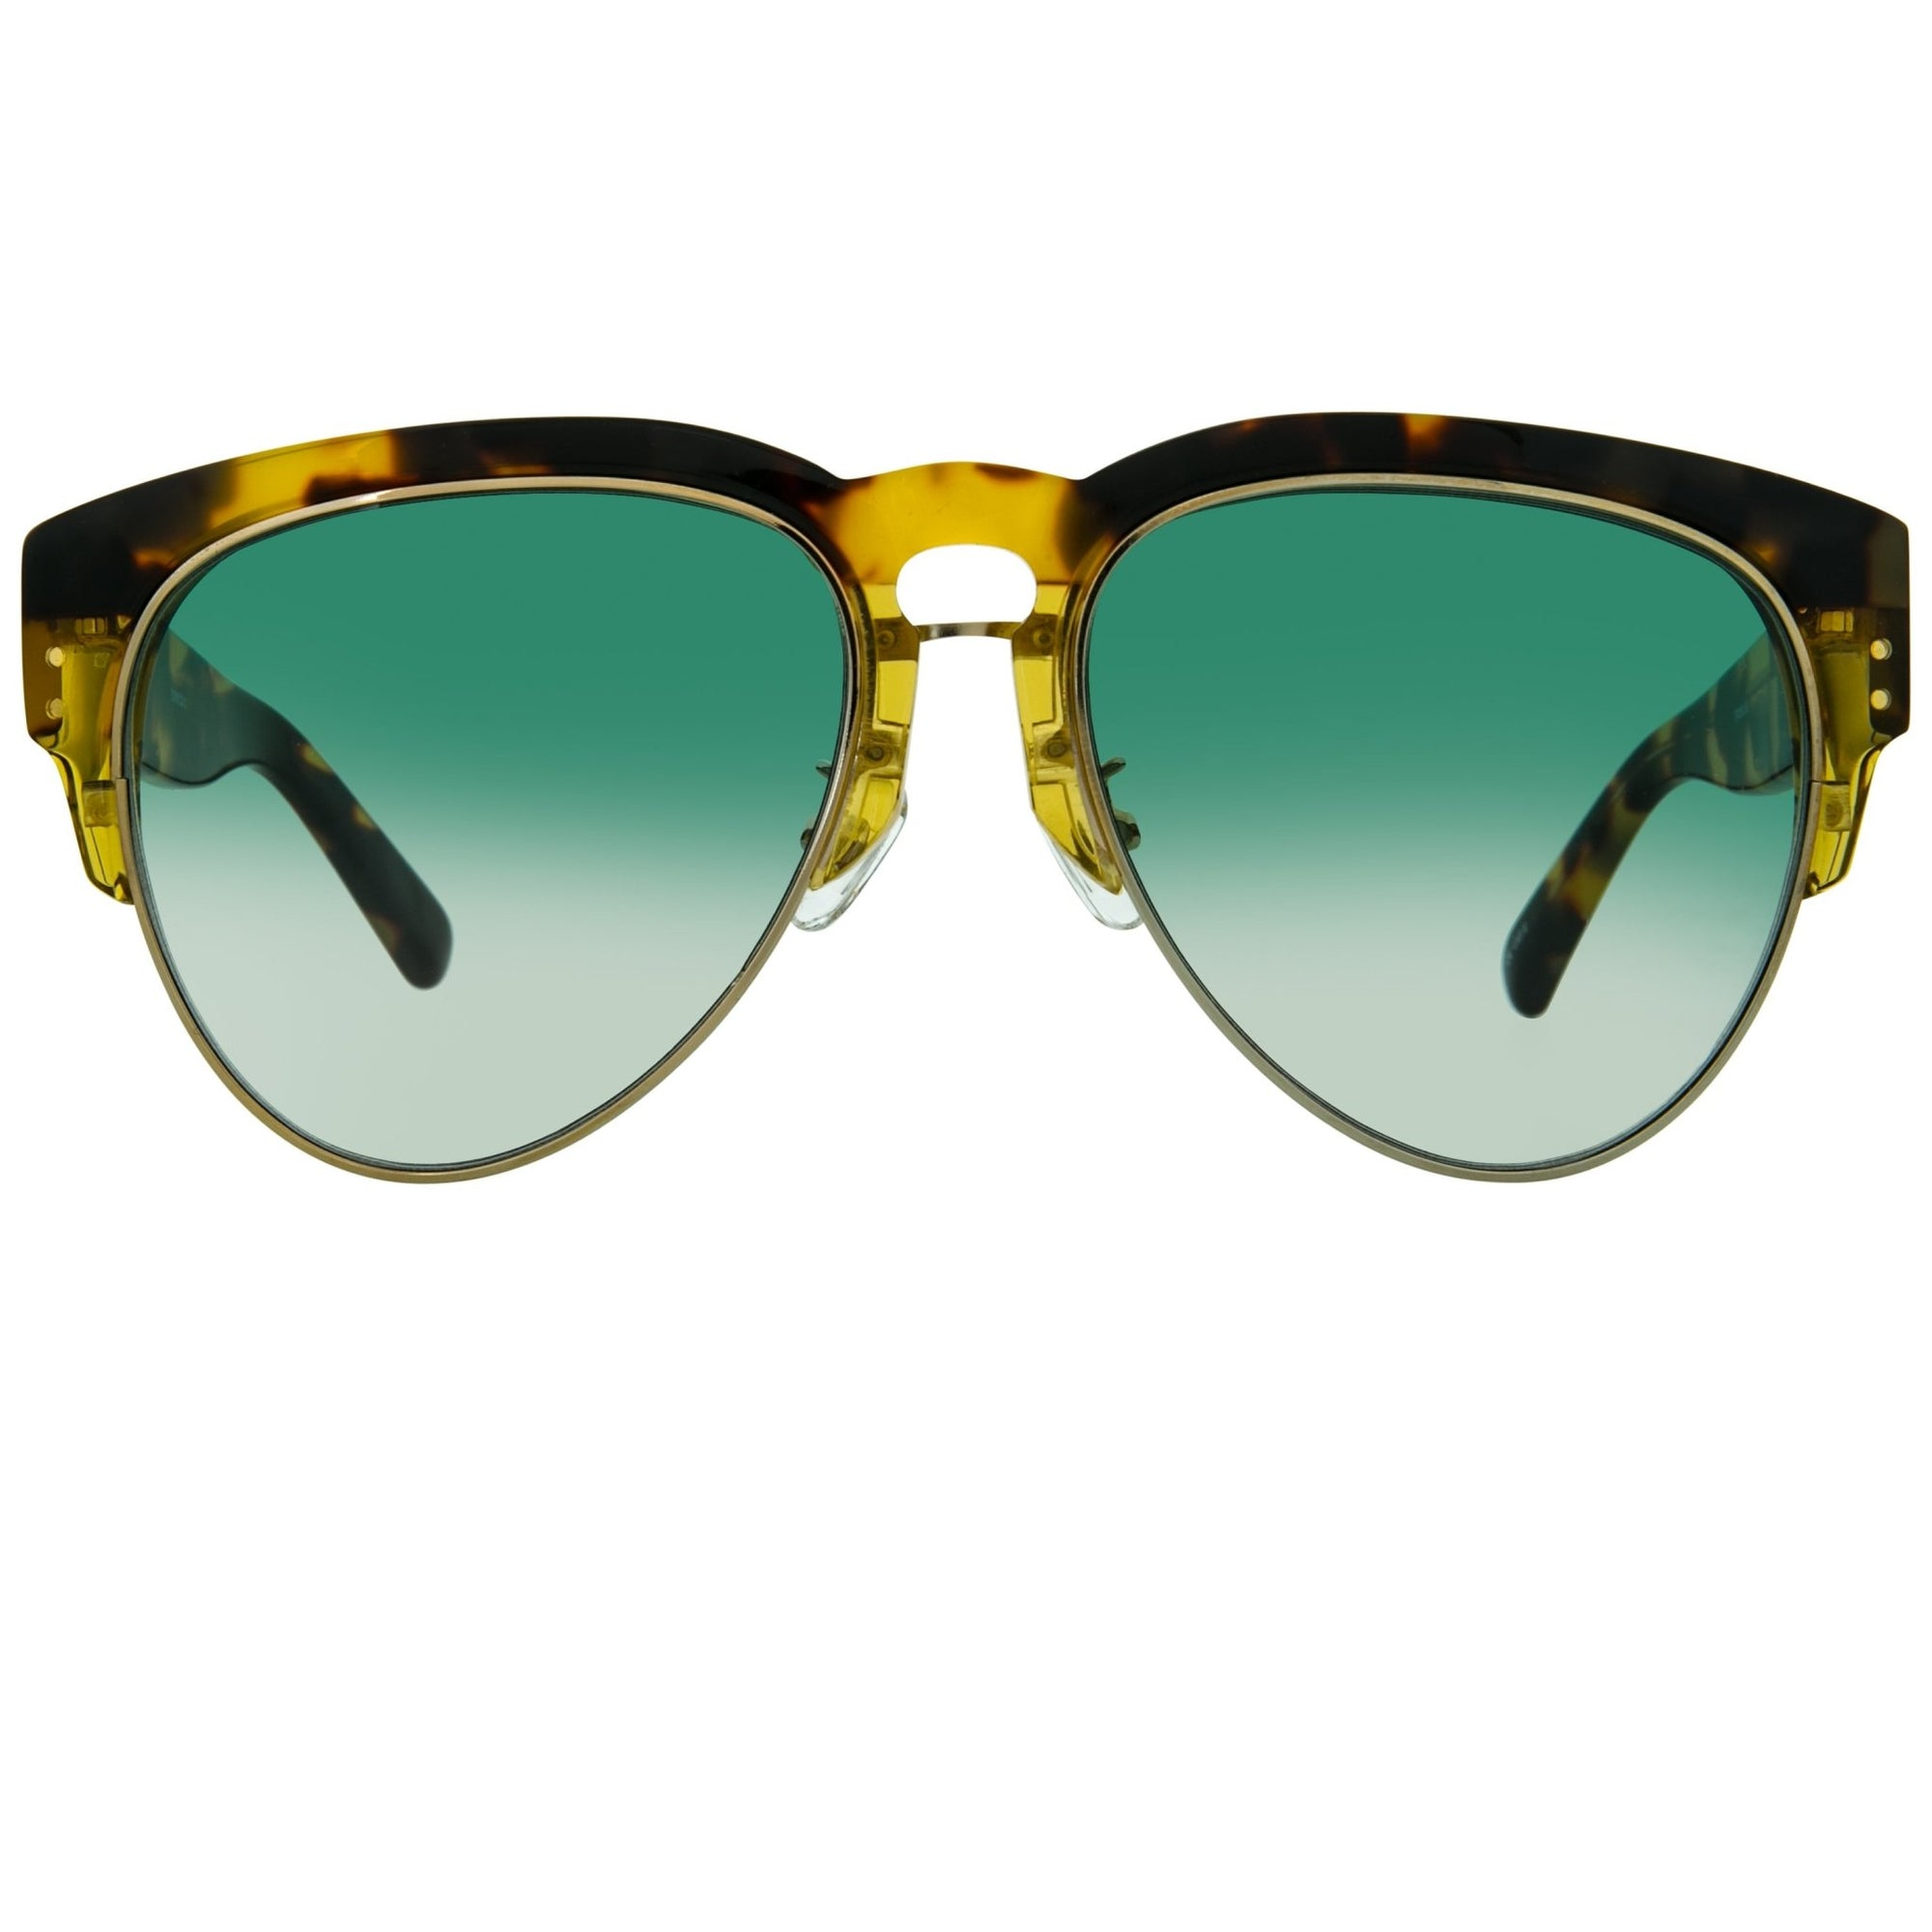 Erdem Women Sunglasses Tortoise Shell Light Gold with Green Graduated Lenses EDM25C2SUN - Watches & Crystals